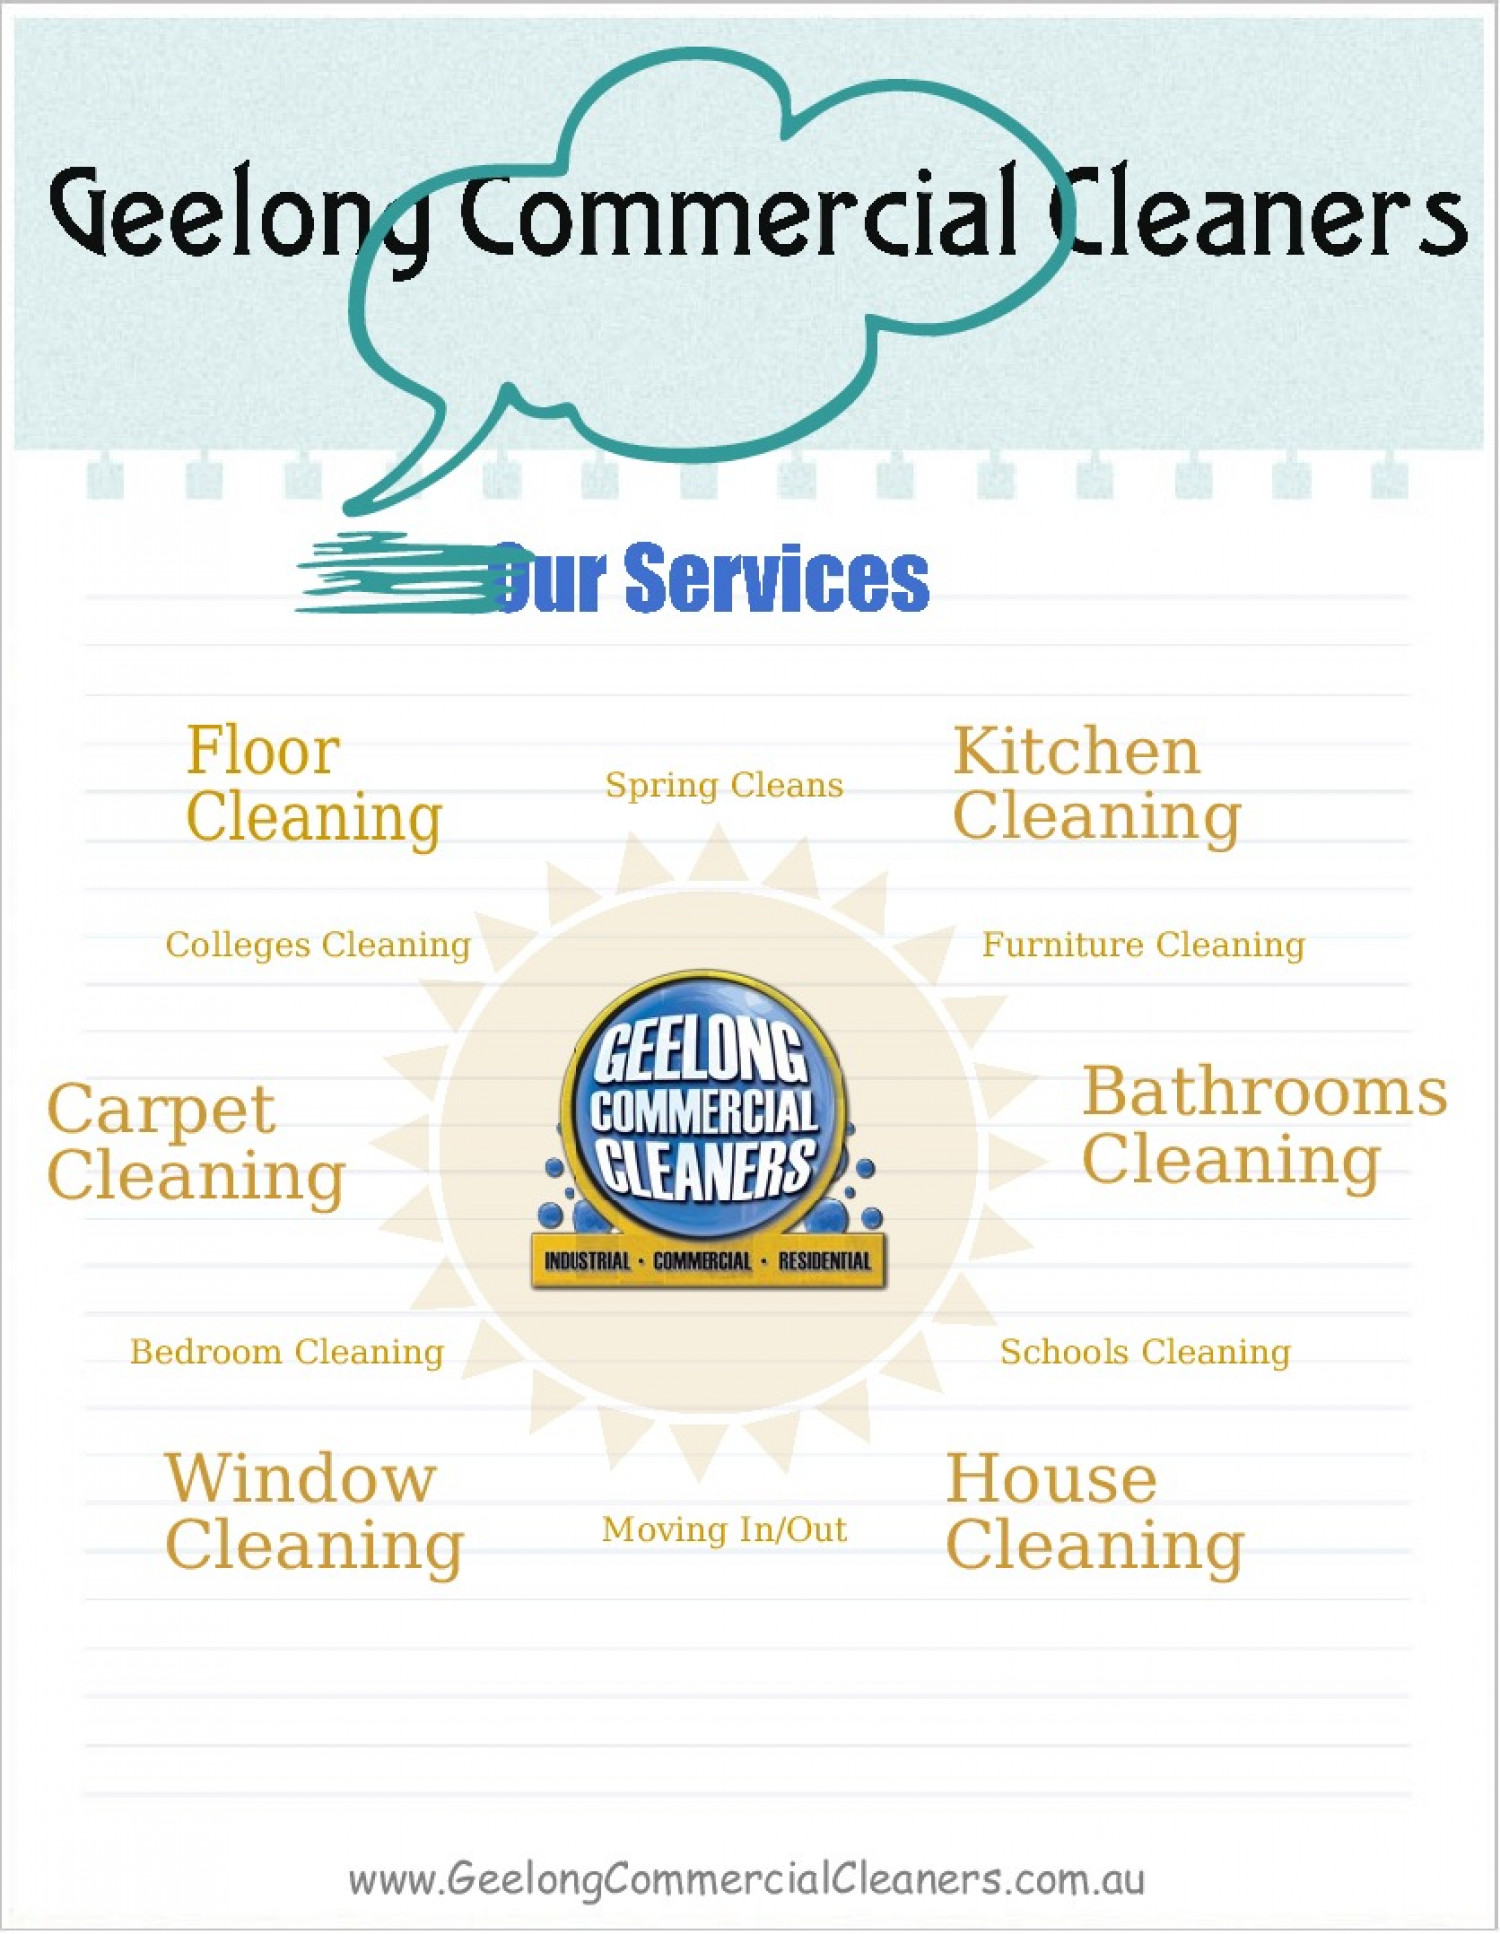 cleaning-services-at-geelong-commercial-